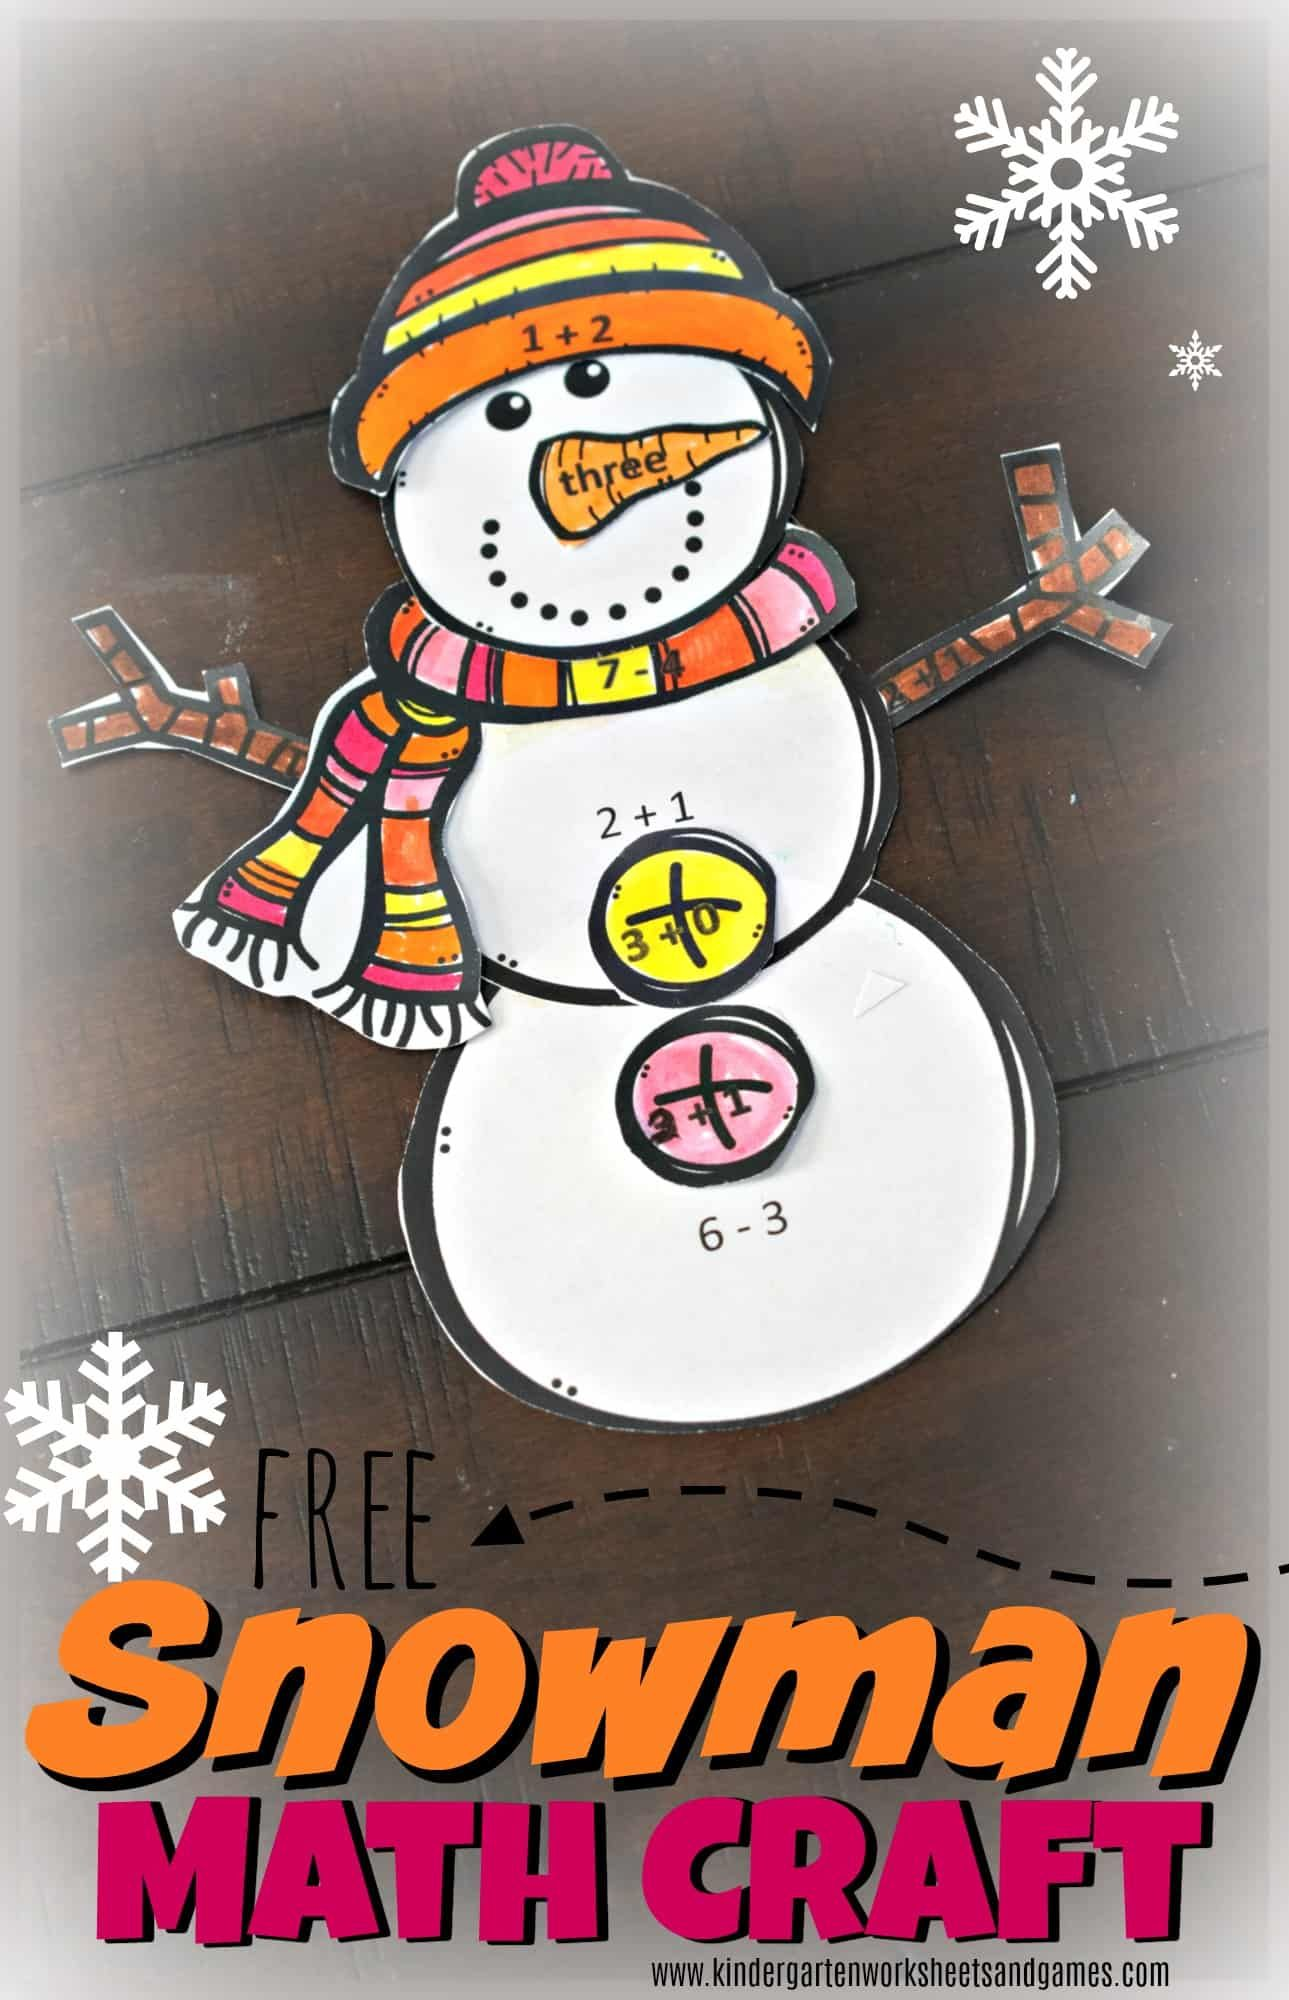 Free Snowman Math Craft